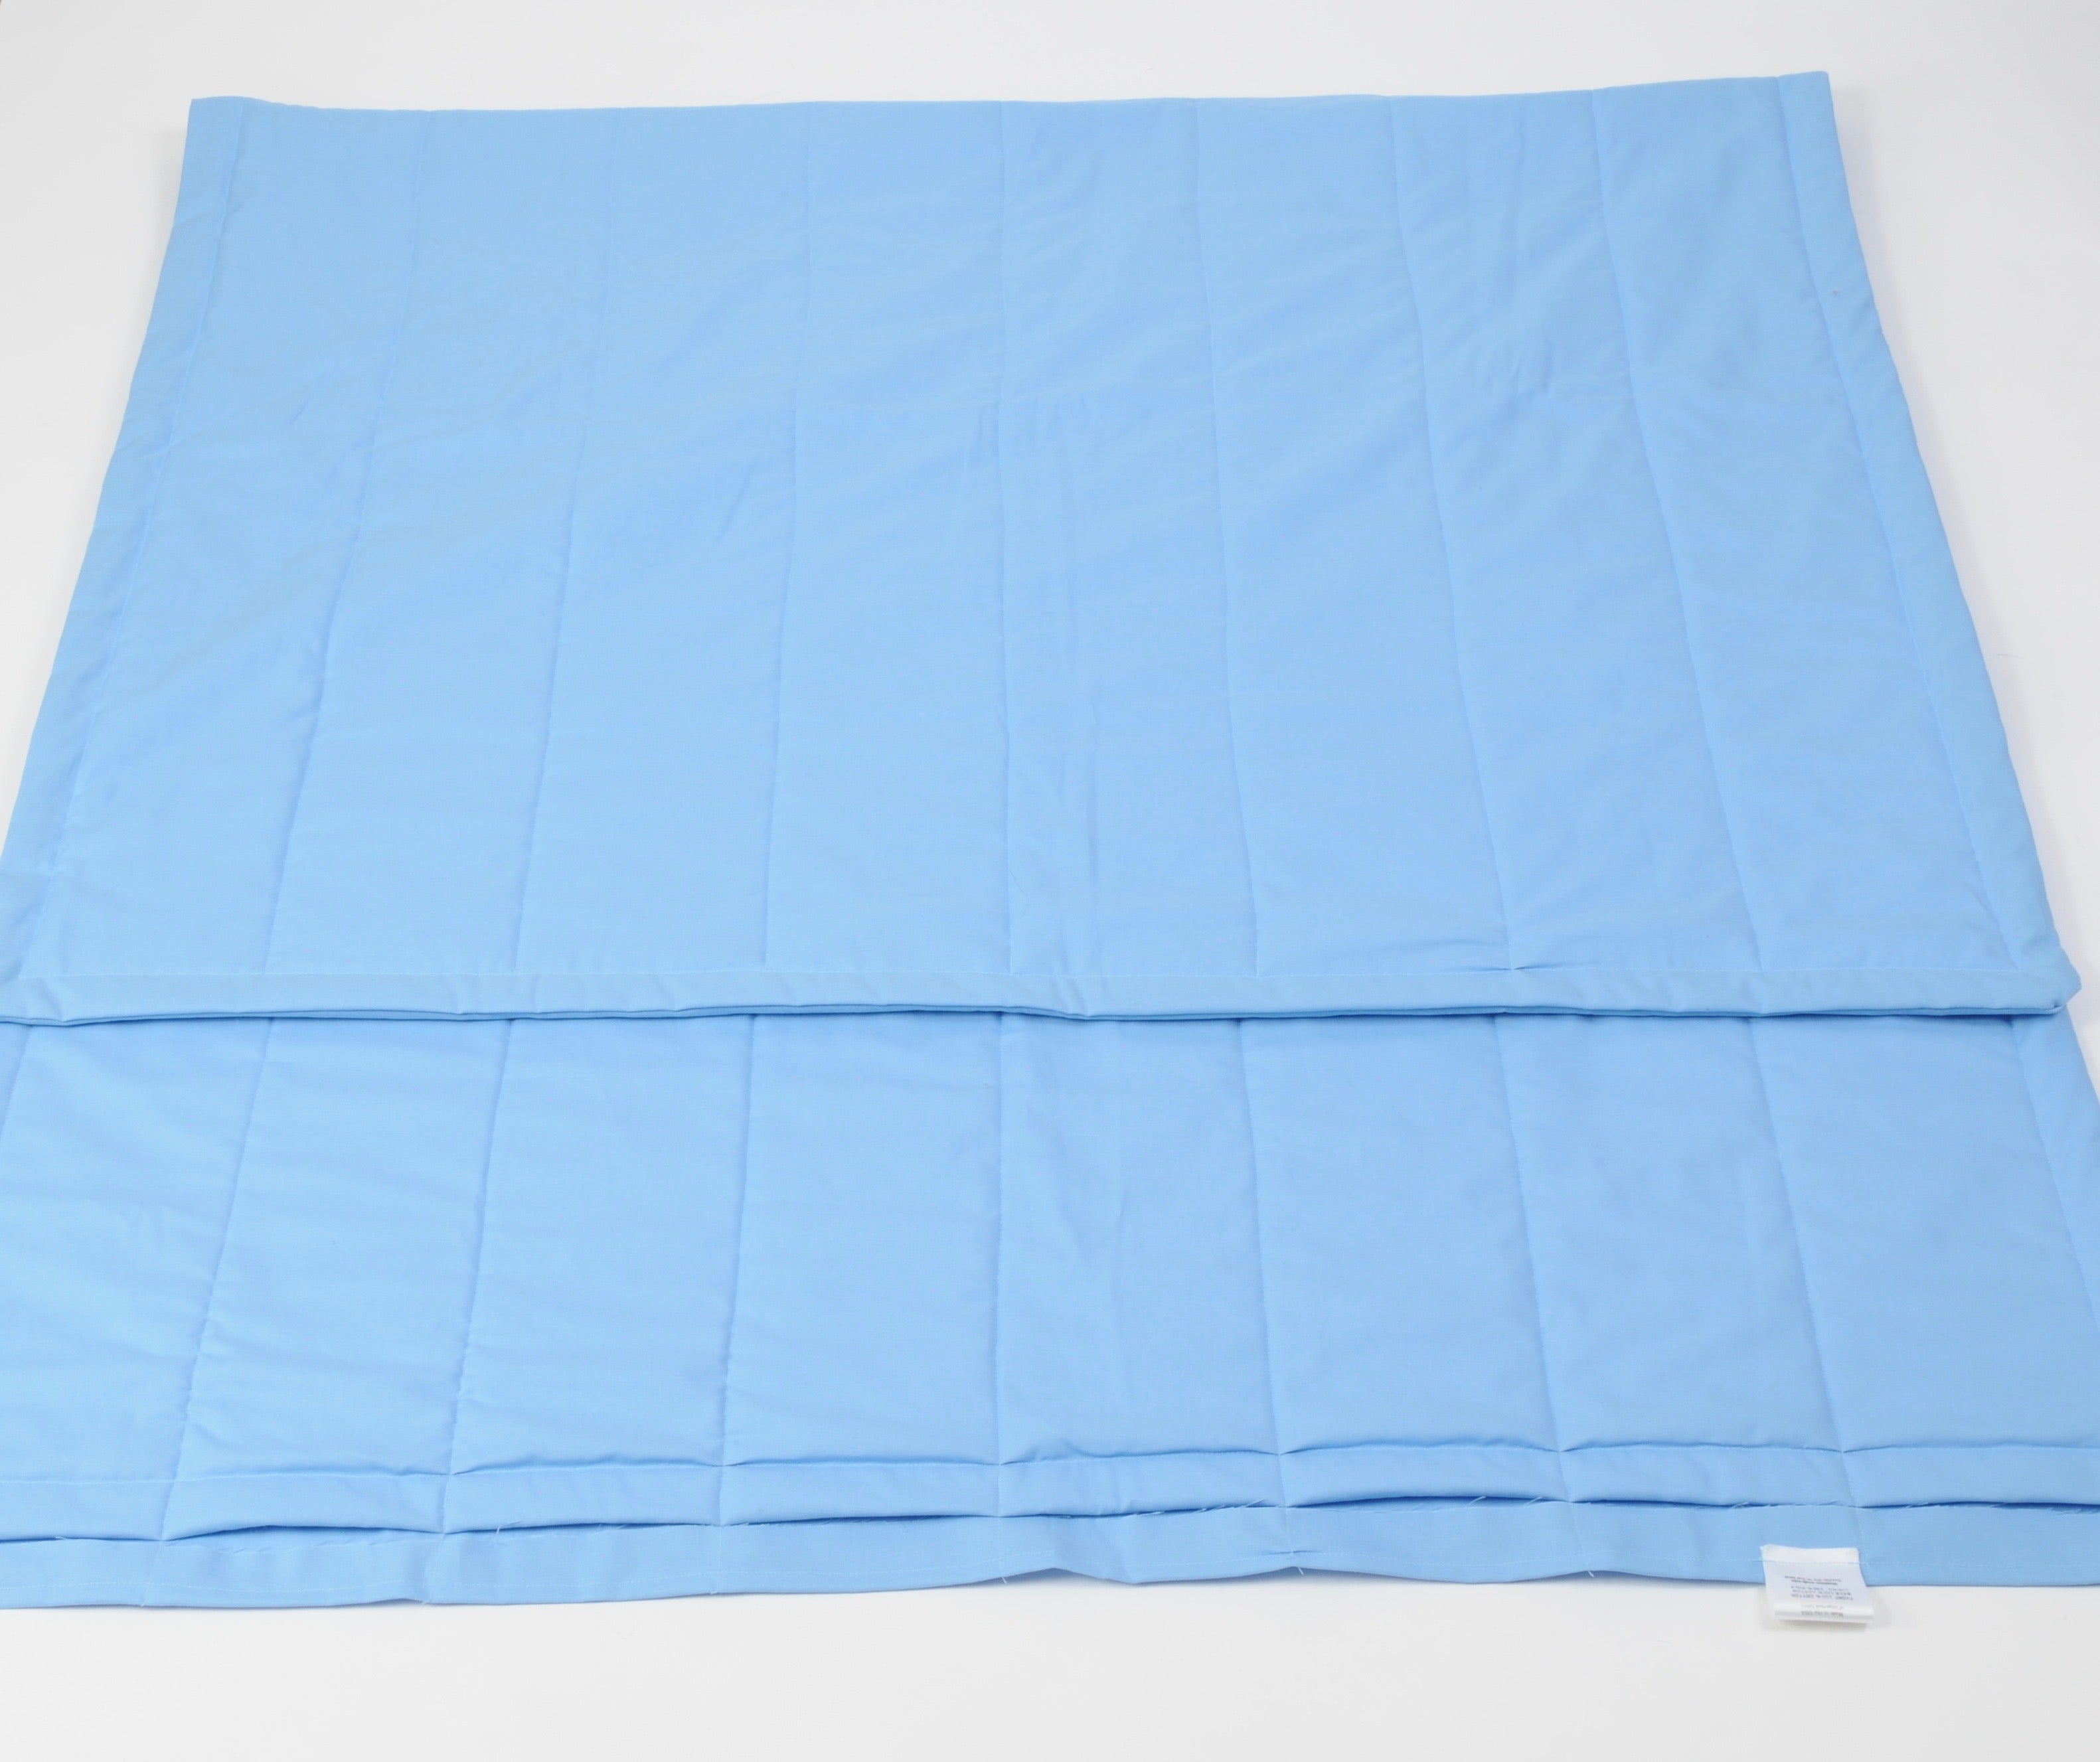 Medium Weighted Blanket Kit (37x42)